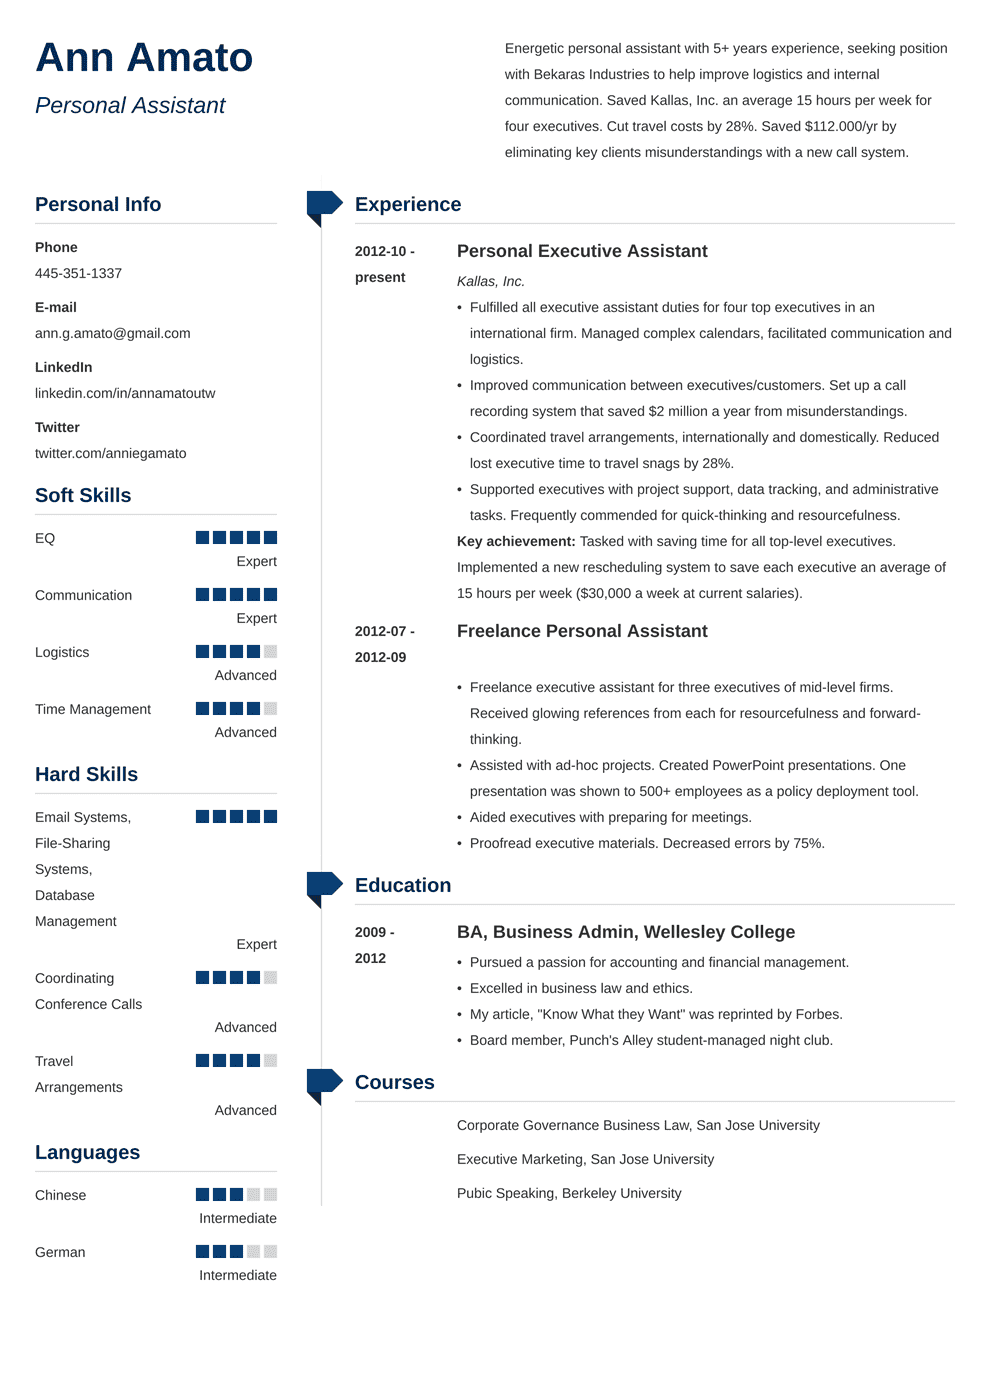 Personal Assistant Resume: Sample & Writing Guide (20+ Examples)